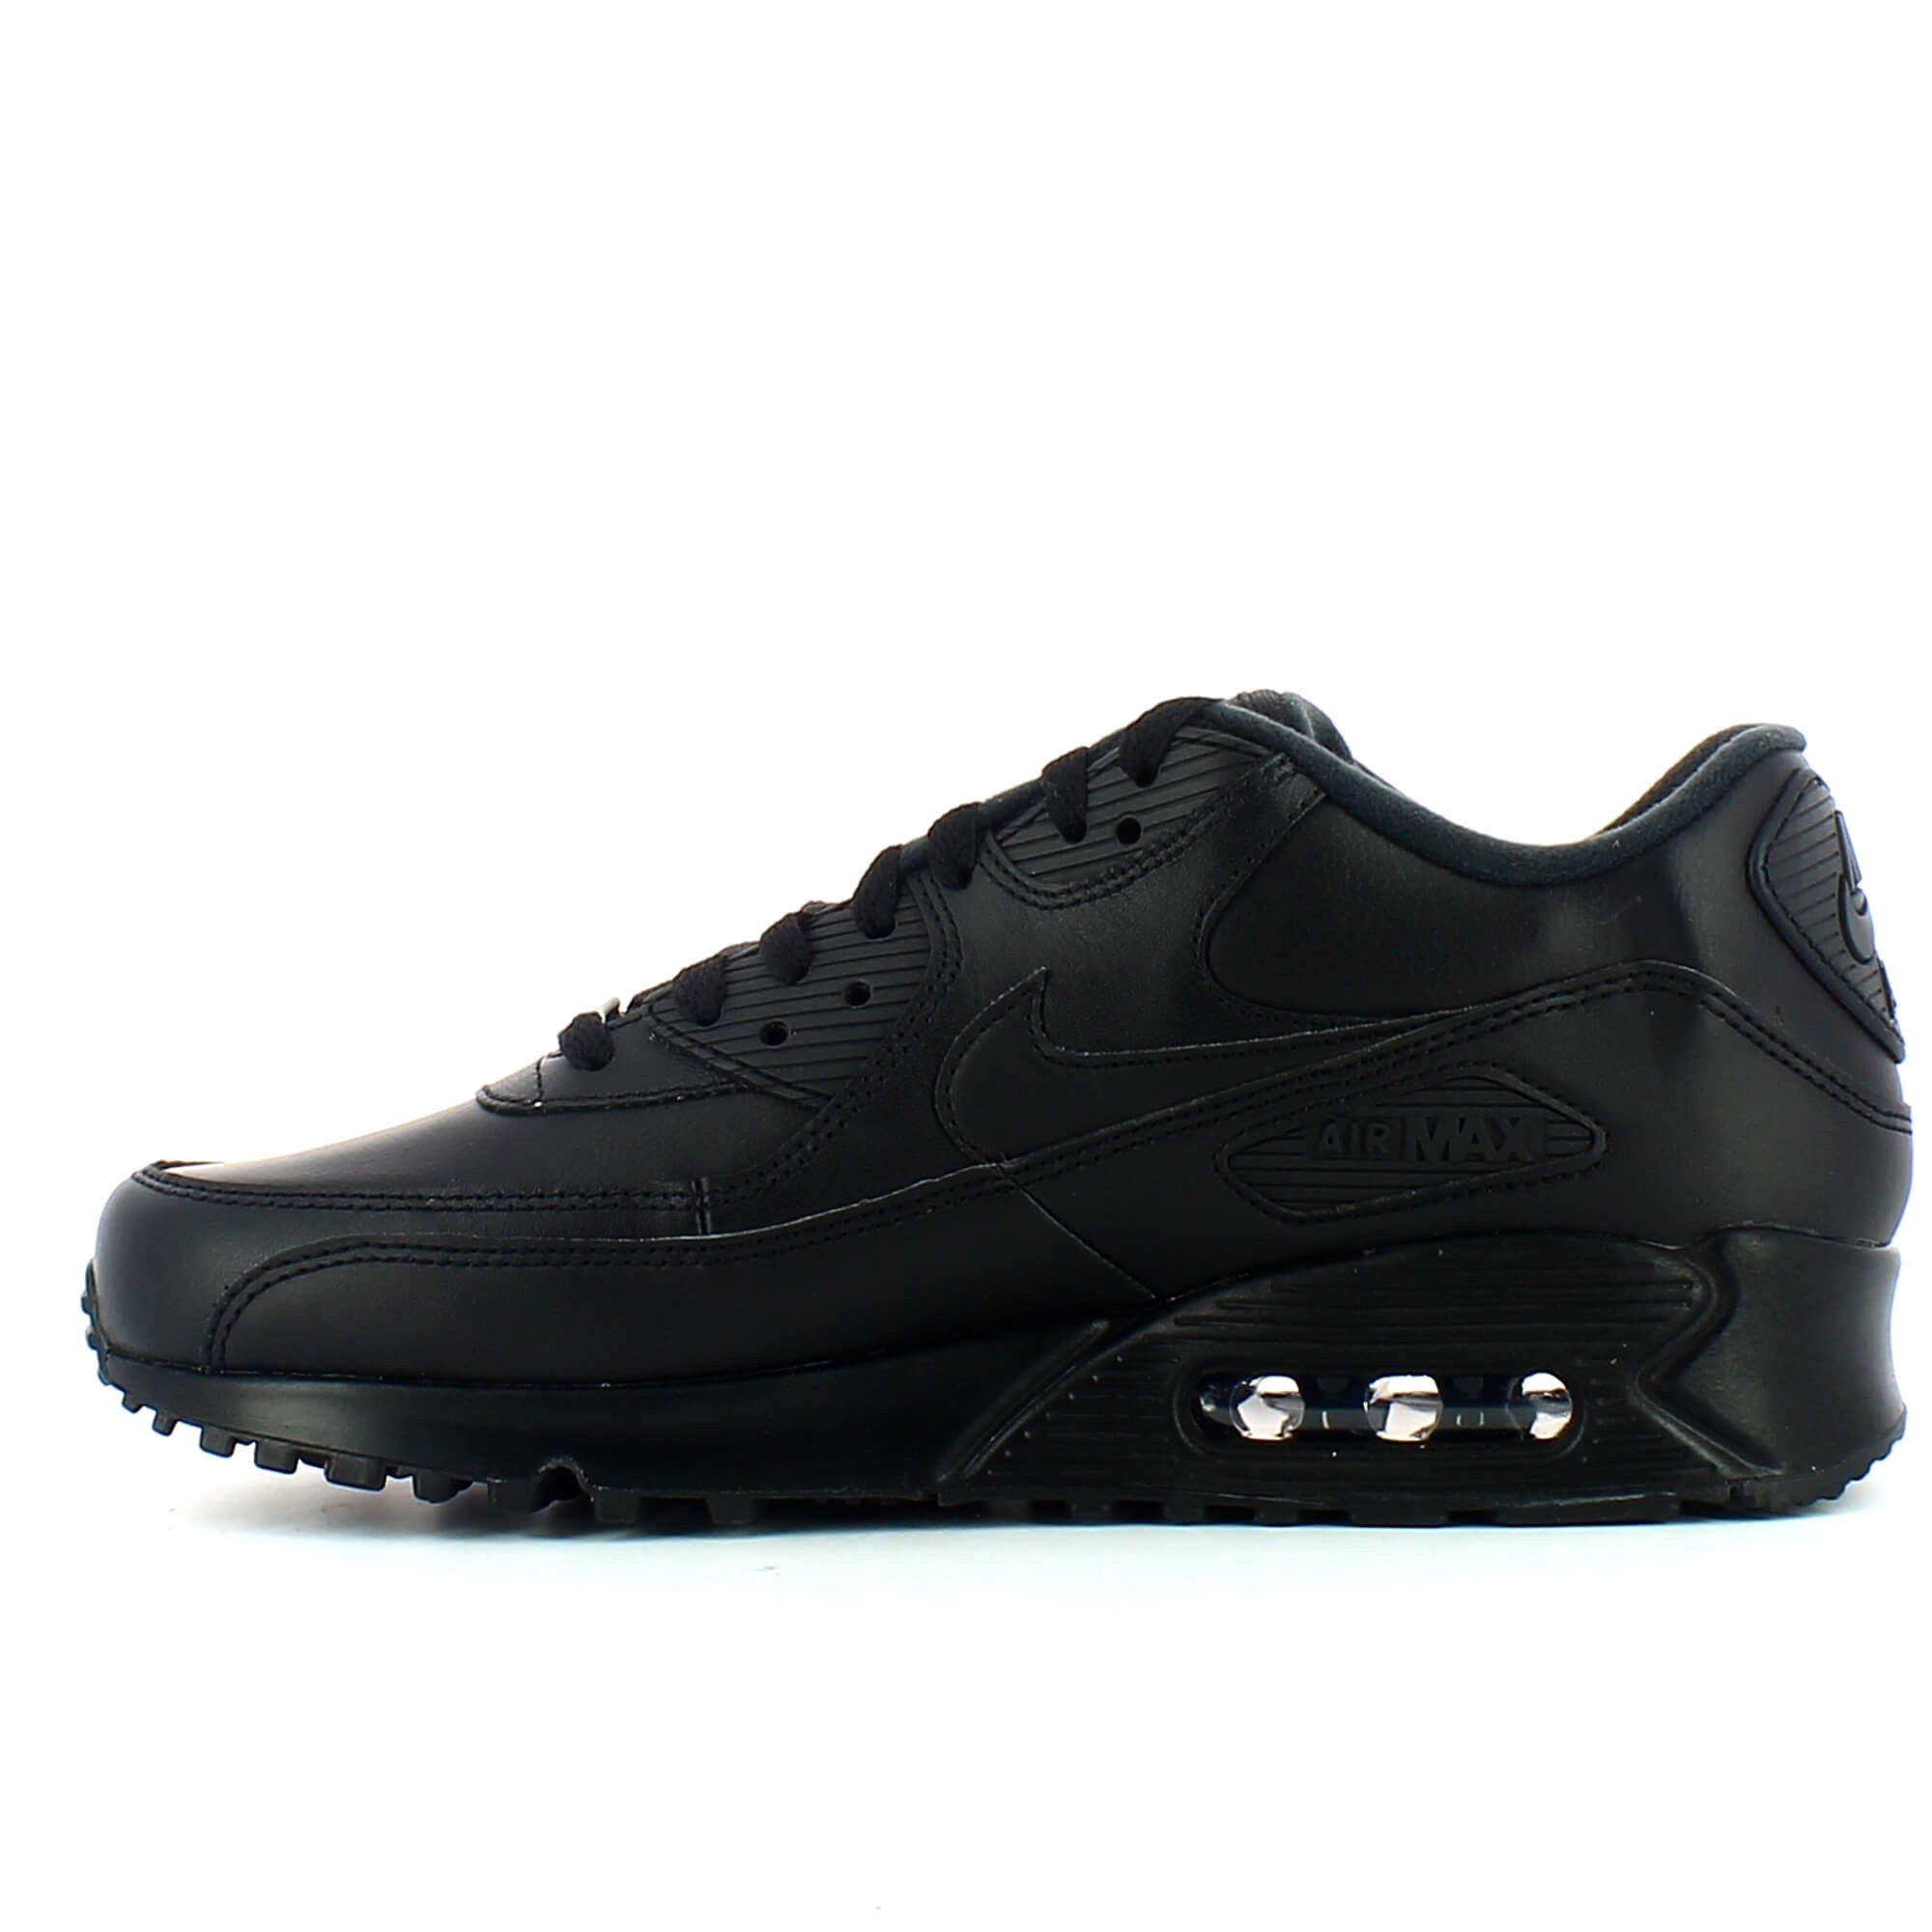 cc41ef5ddd060 aliexpress nike air max negro on negro 85677 418cc